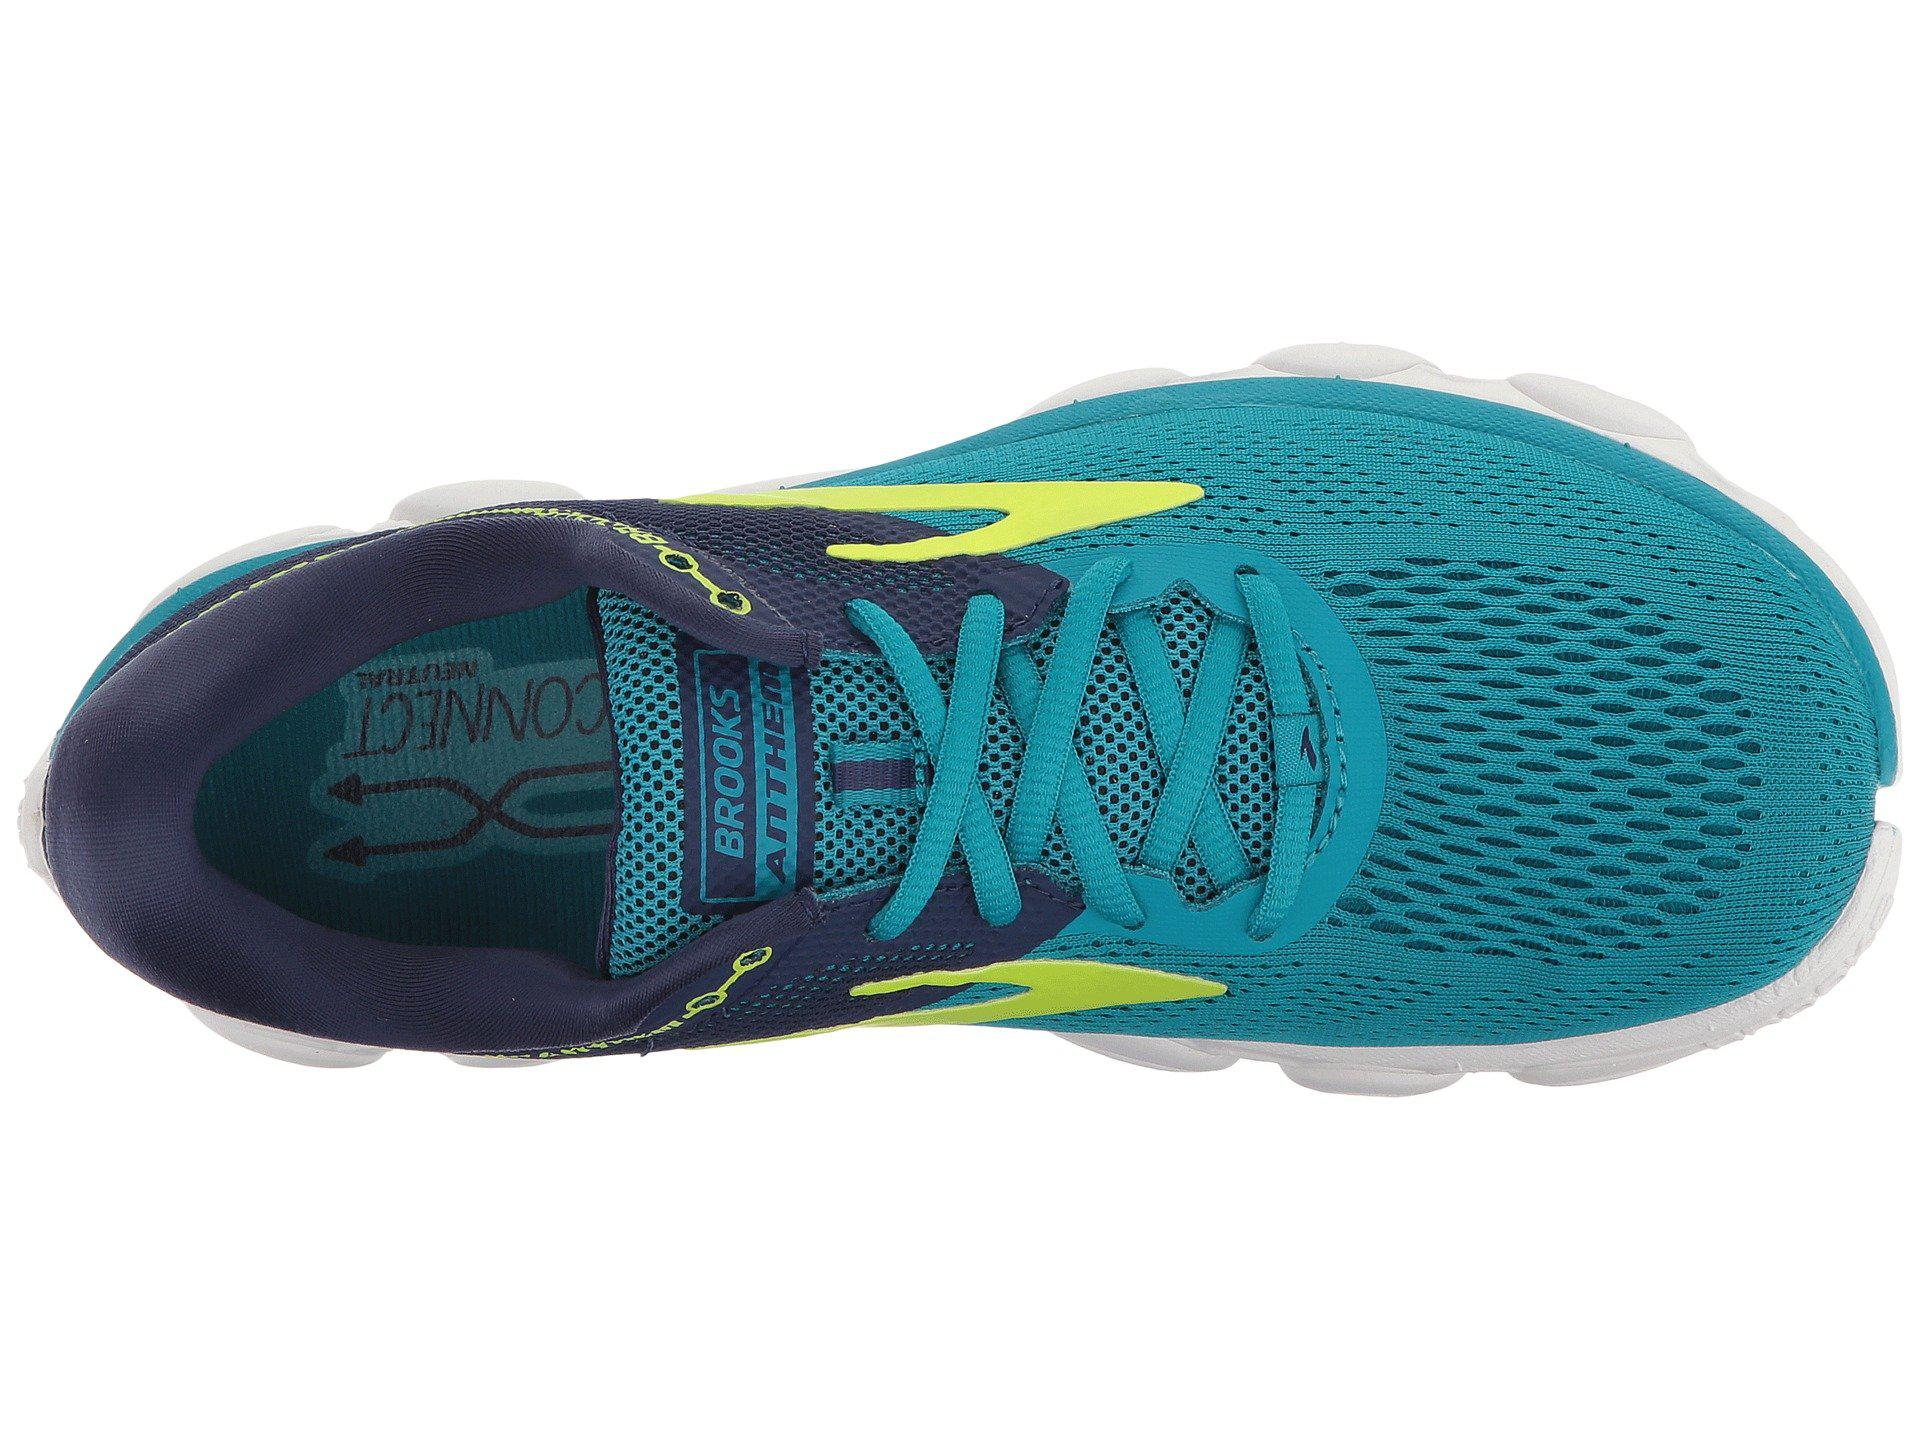 c4ba271bbc7 Lyst - Brooks Anthem (blue navy lime) Women s Running Shoes in Blue